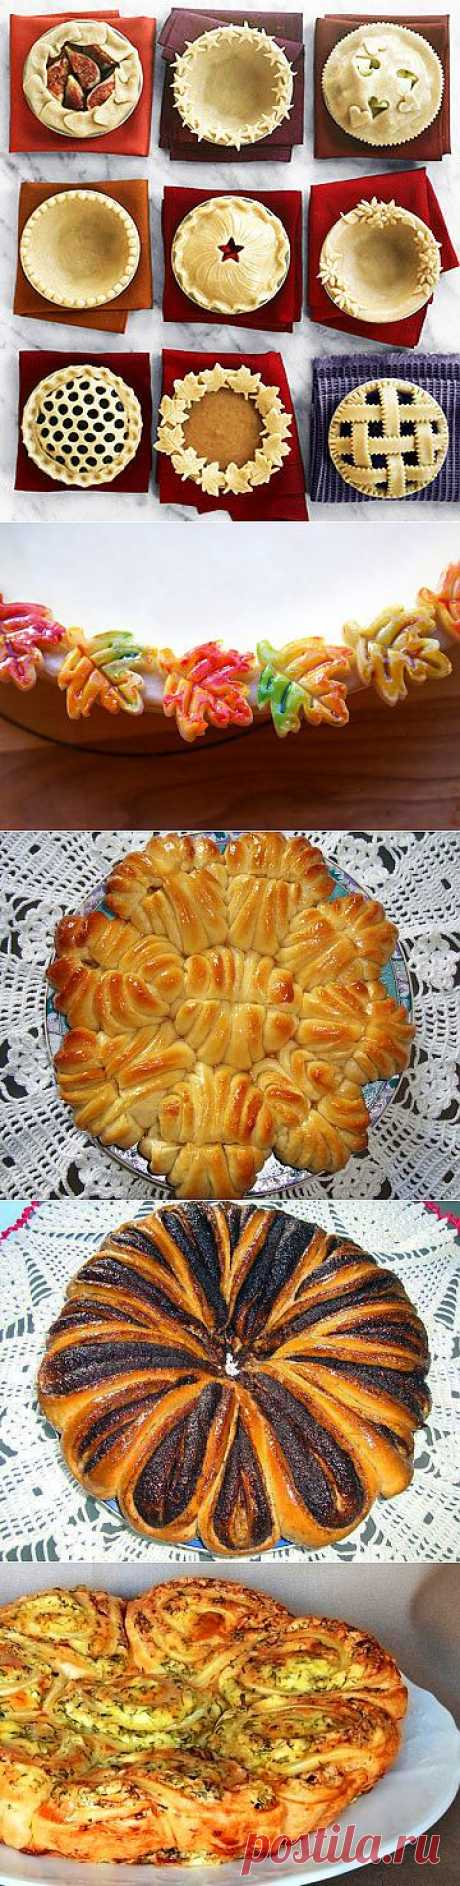 DECORATION of PIES - Simple recipes of Овкусе.ру